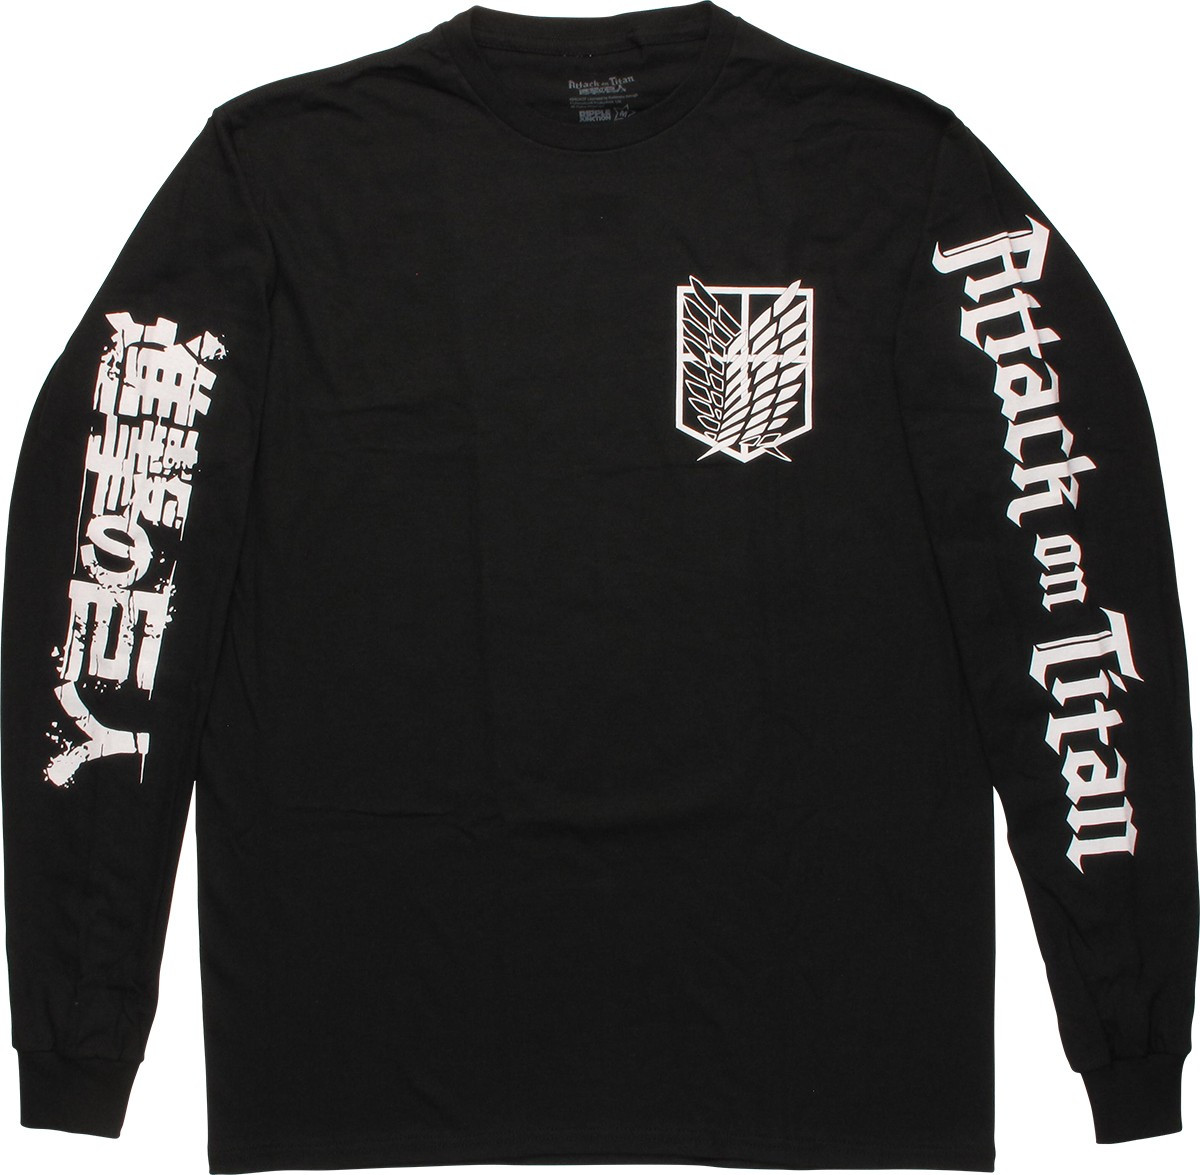 Attack on Titan Scout Shield Long Sleeve T-Shirt - Walmart.com